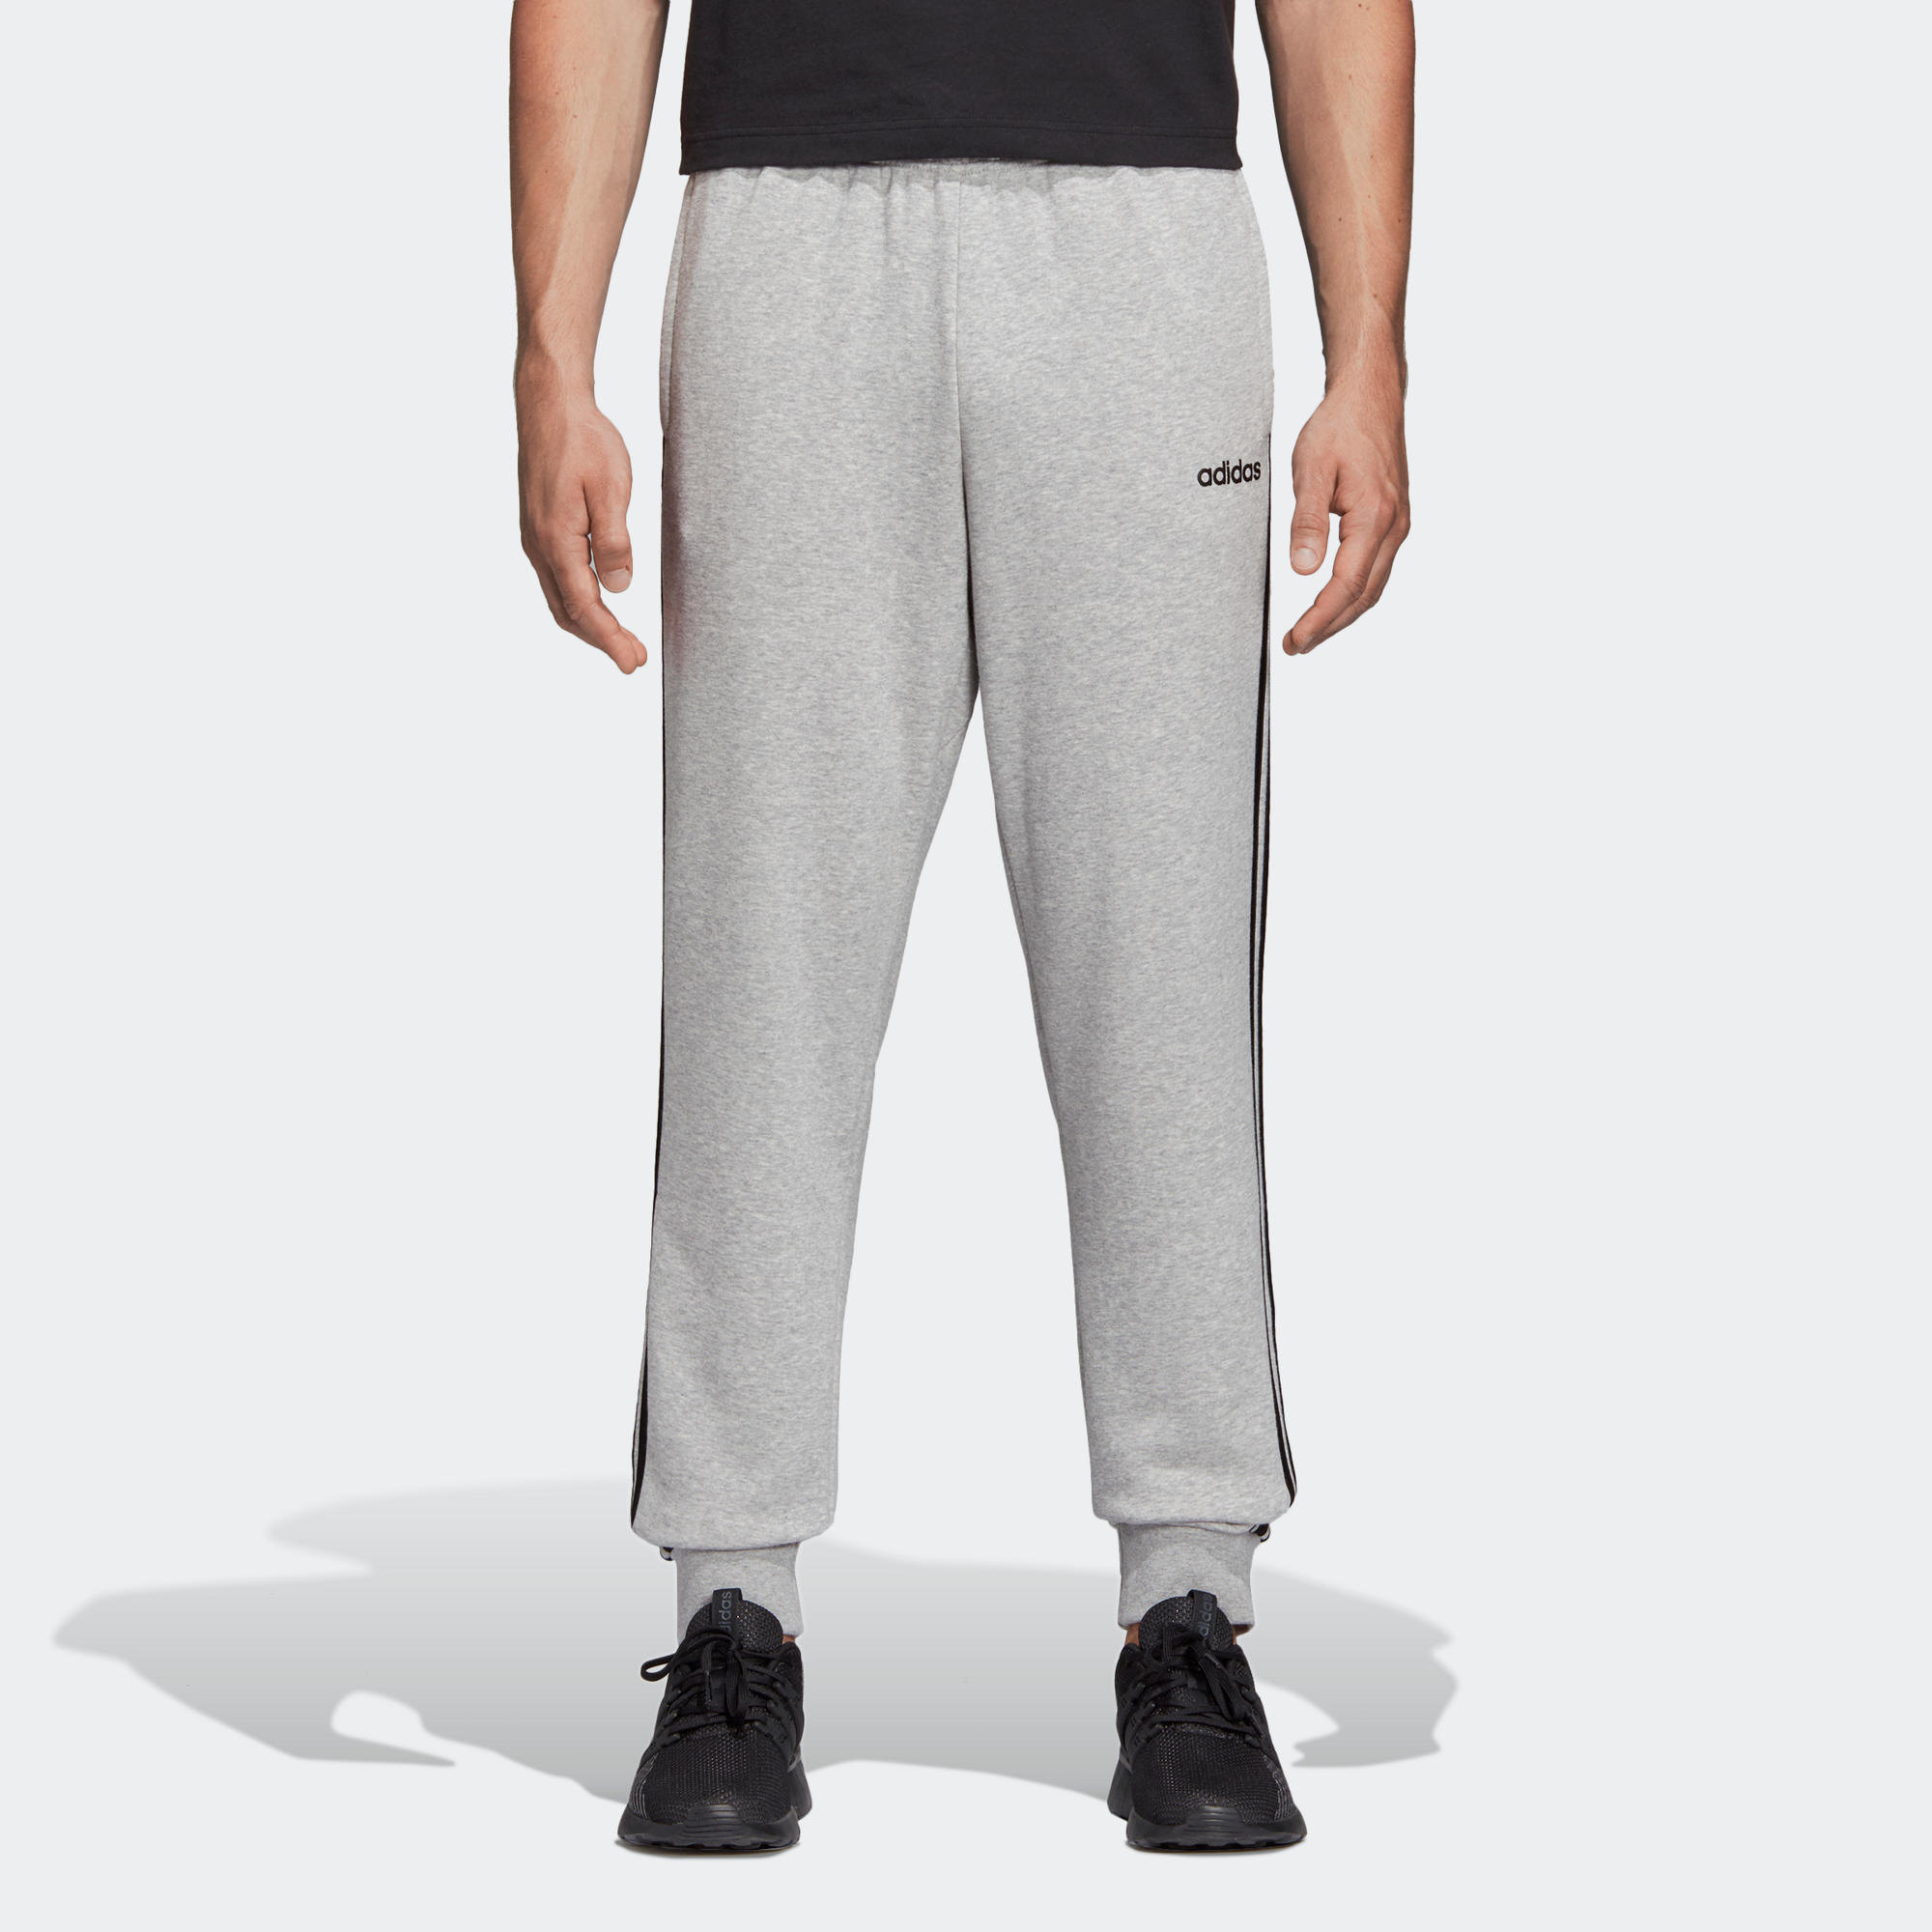 adidas homme survetement pantalon